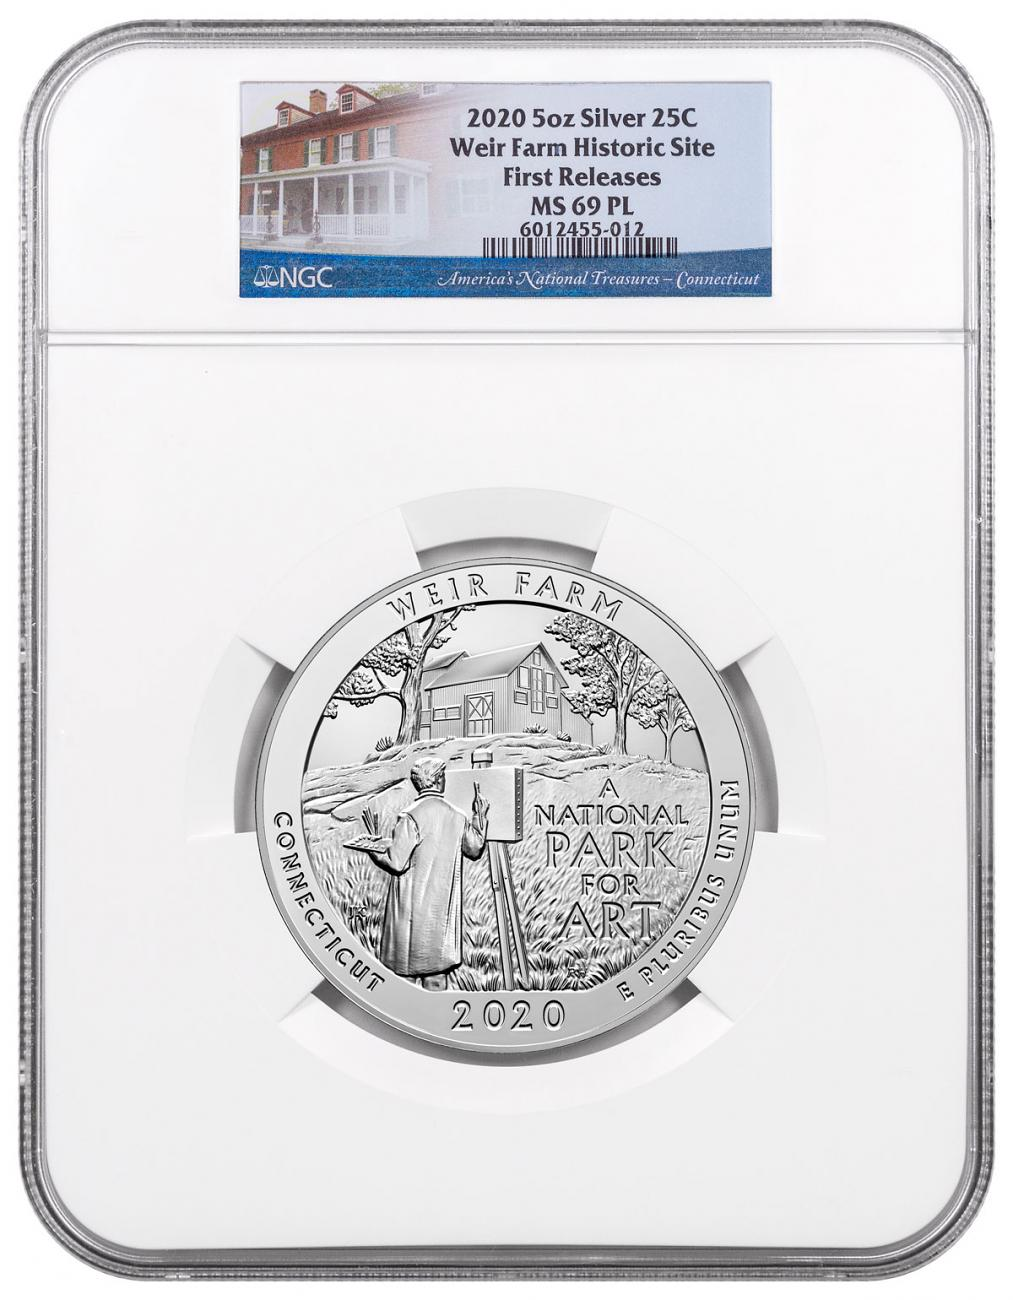 2020 Weir Farm National Historic Site 5 oz. Silver ATB America the Beautiful 25C Coin NGC MS69 PL FR America the Beautiful Label